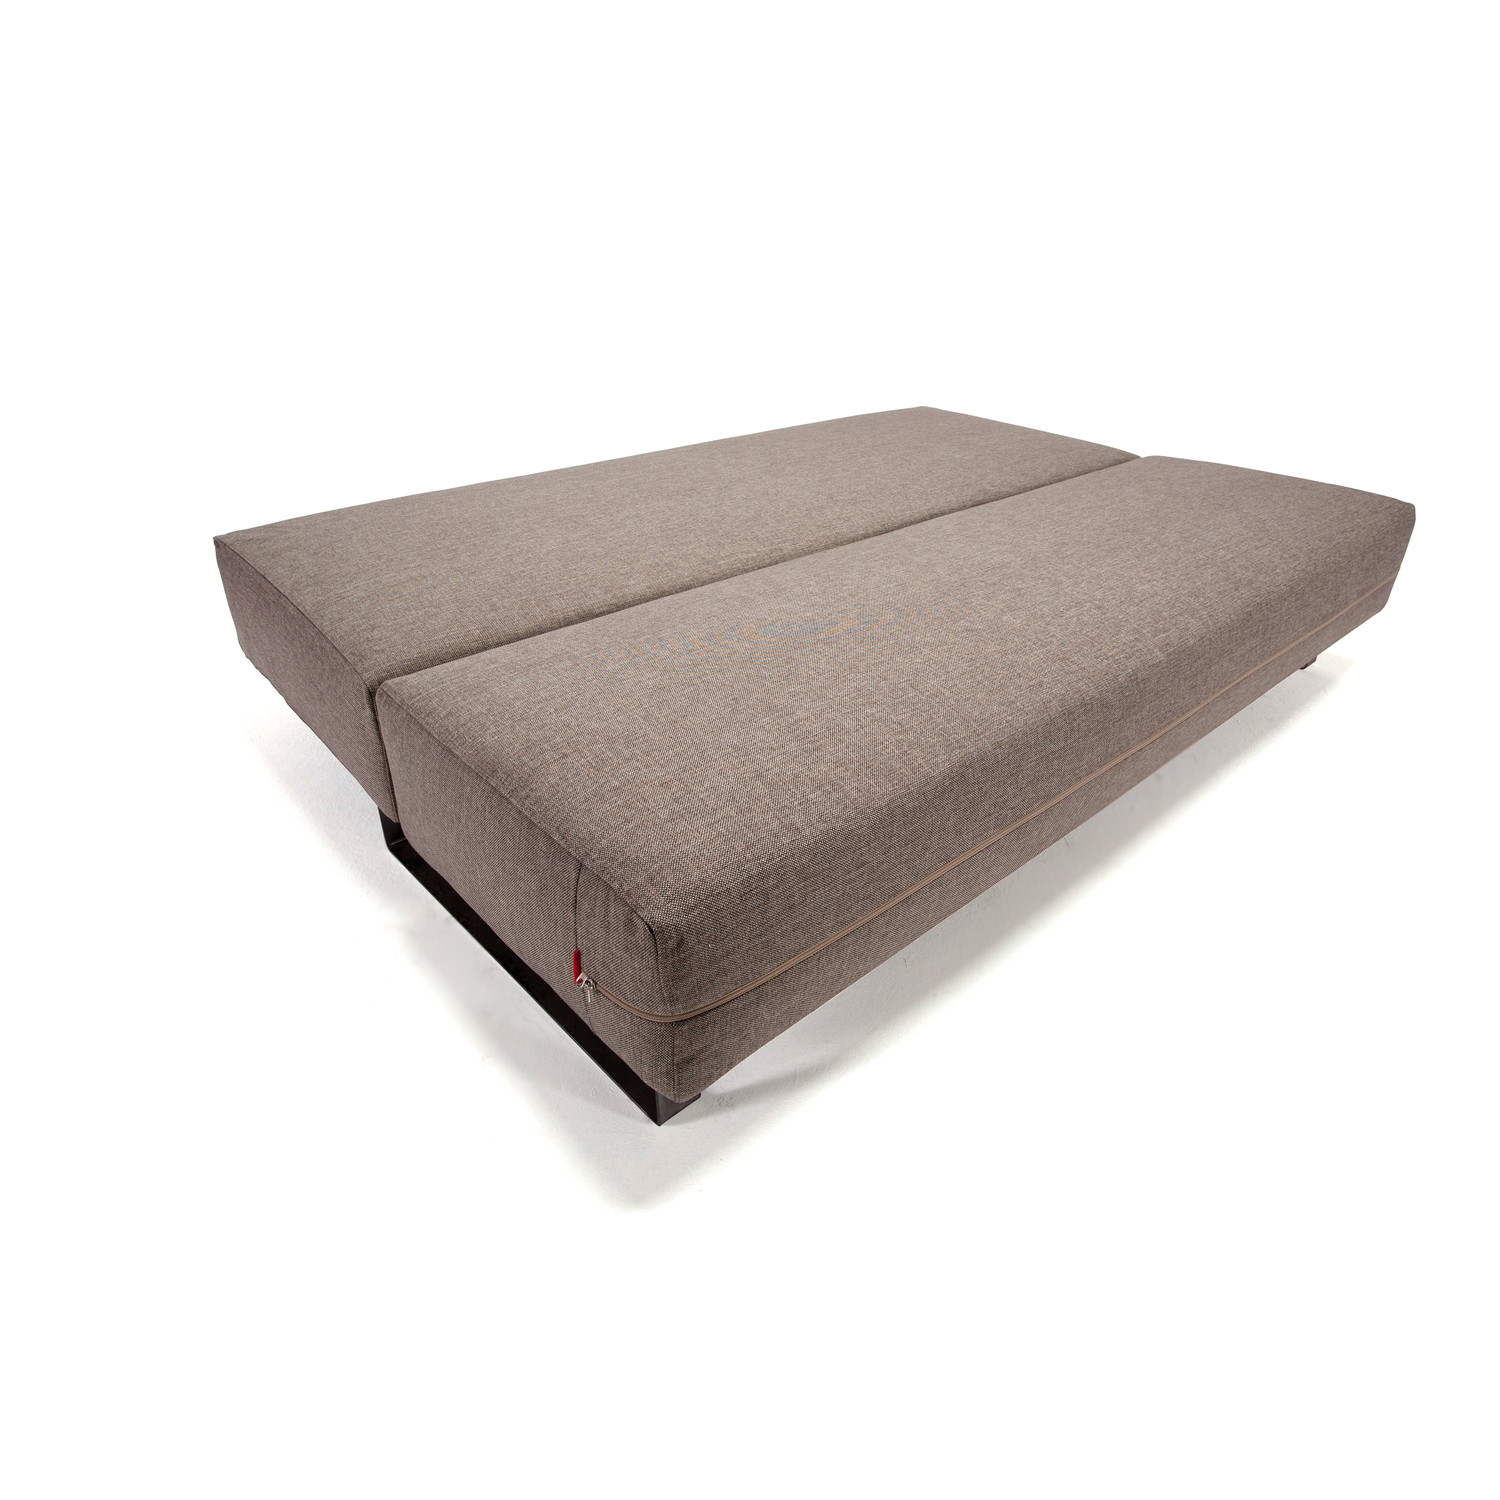 Reloader sleek excess sofa full mixed dance brown for Innovation sofa cover